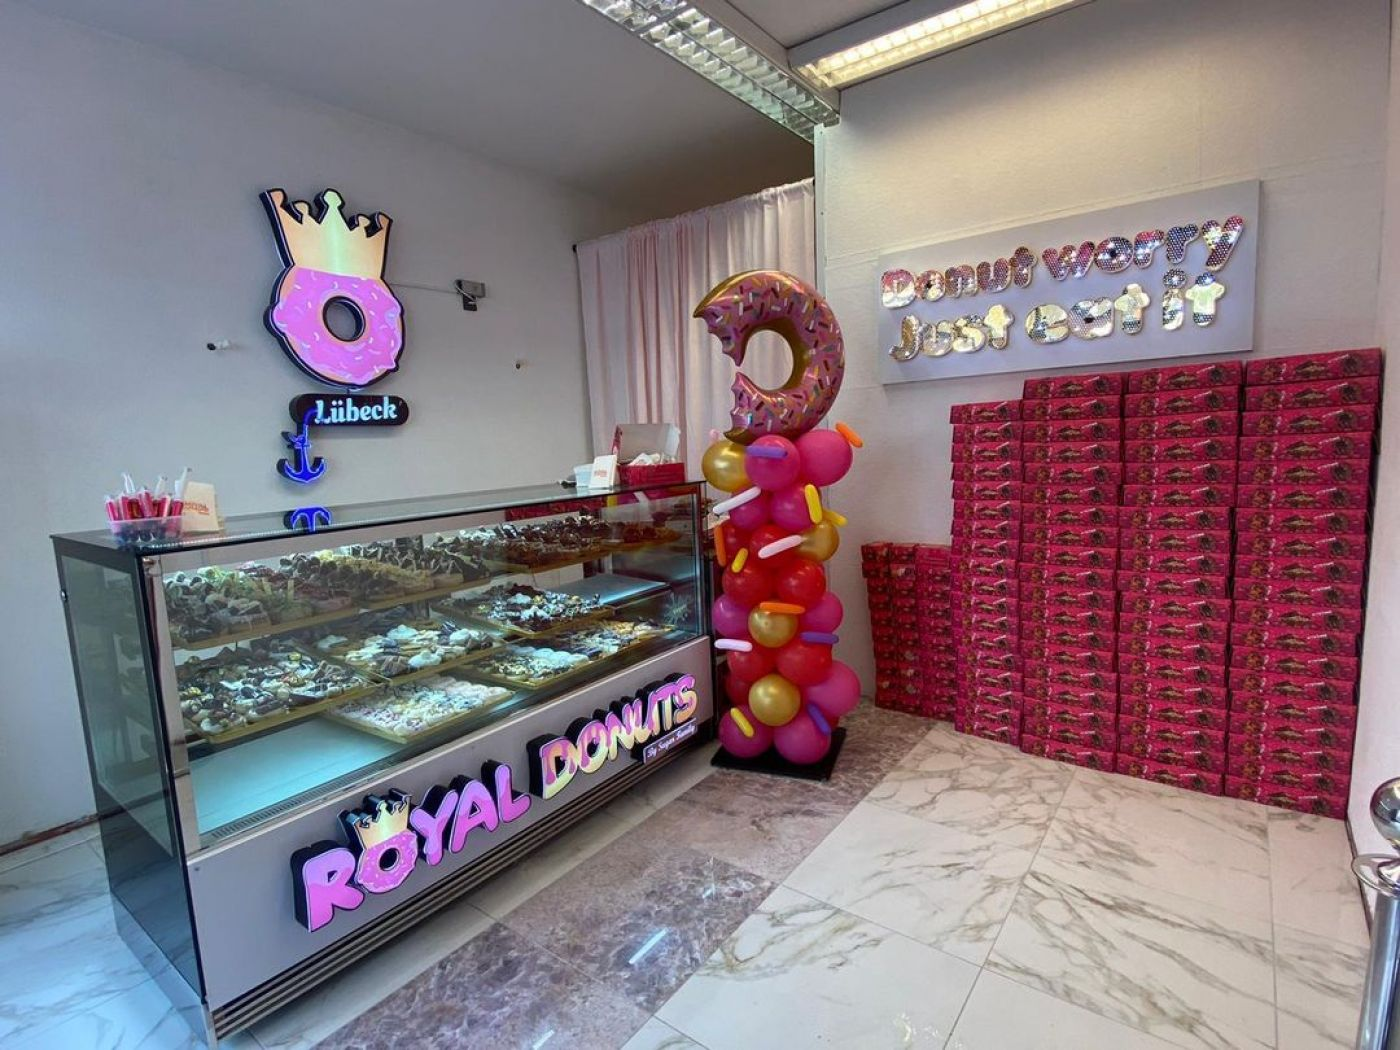 Royal Donuts Shop in Lübeck